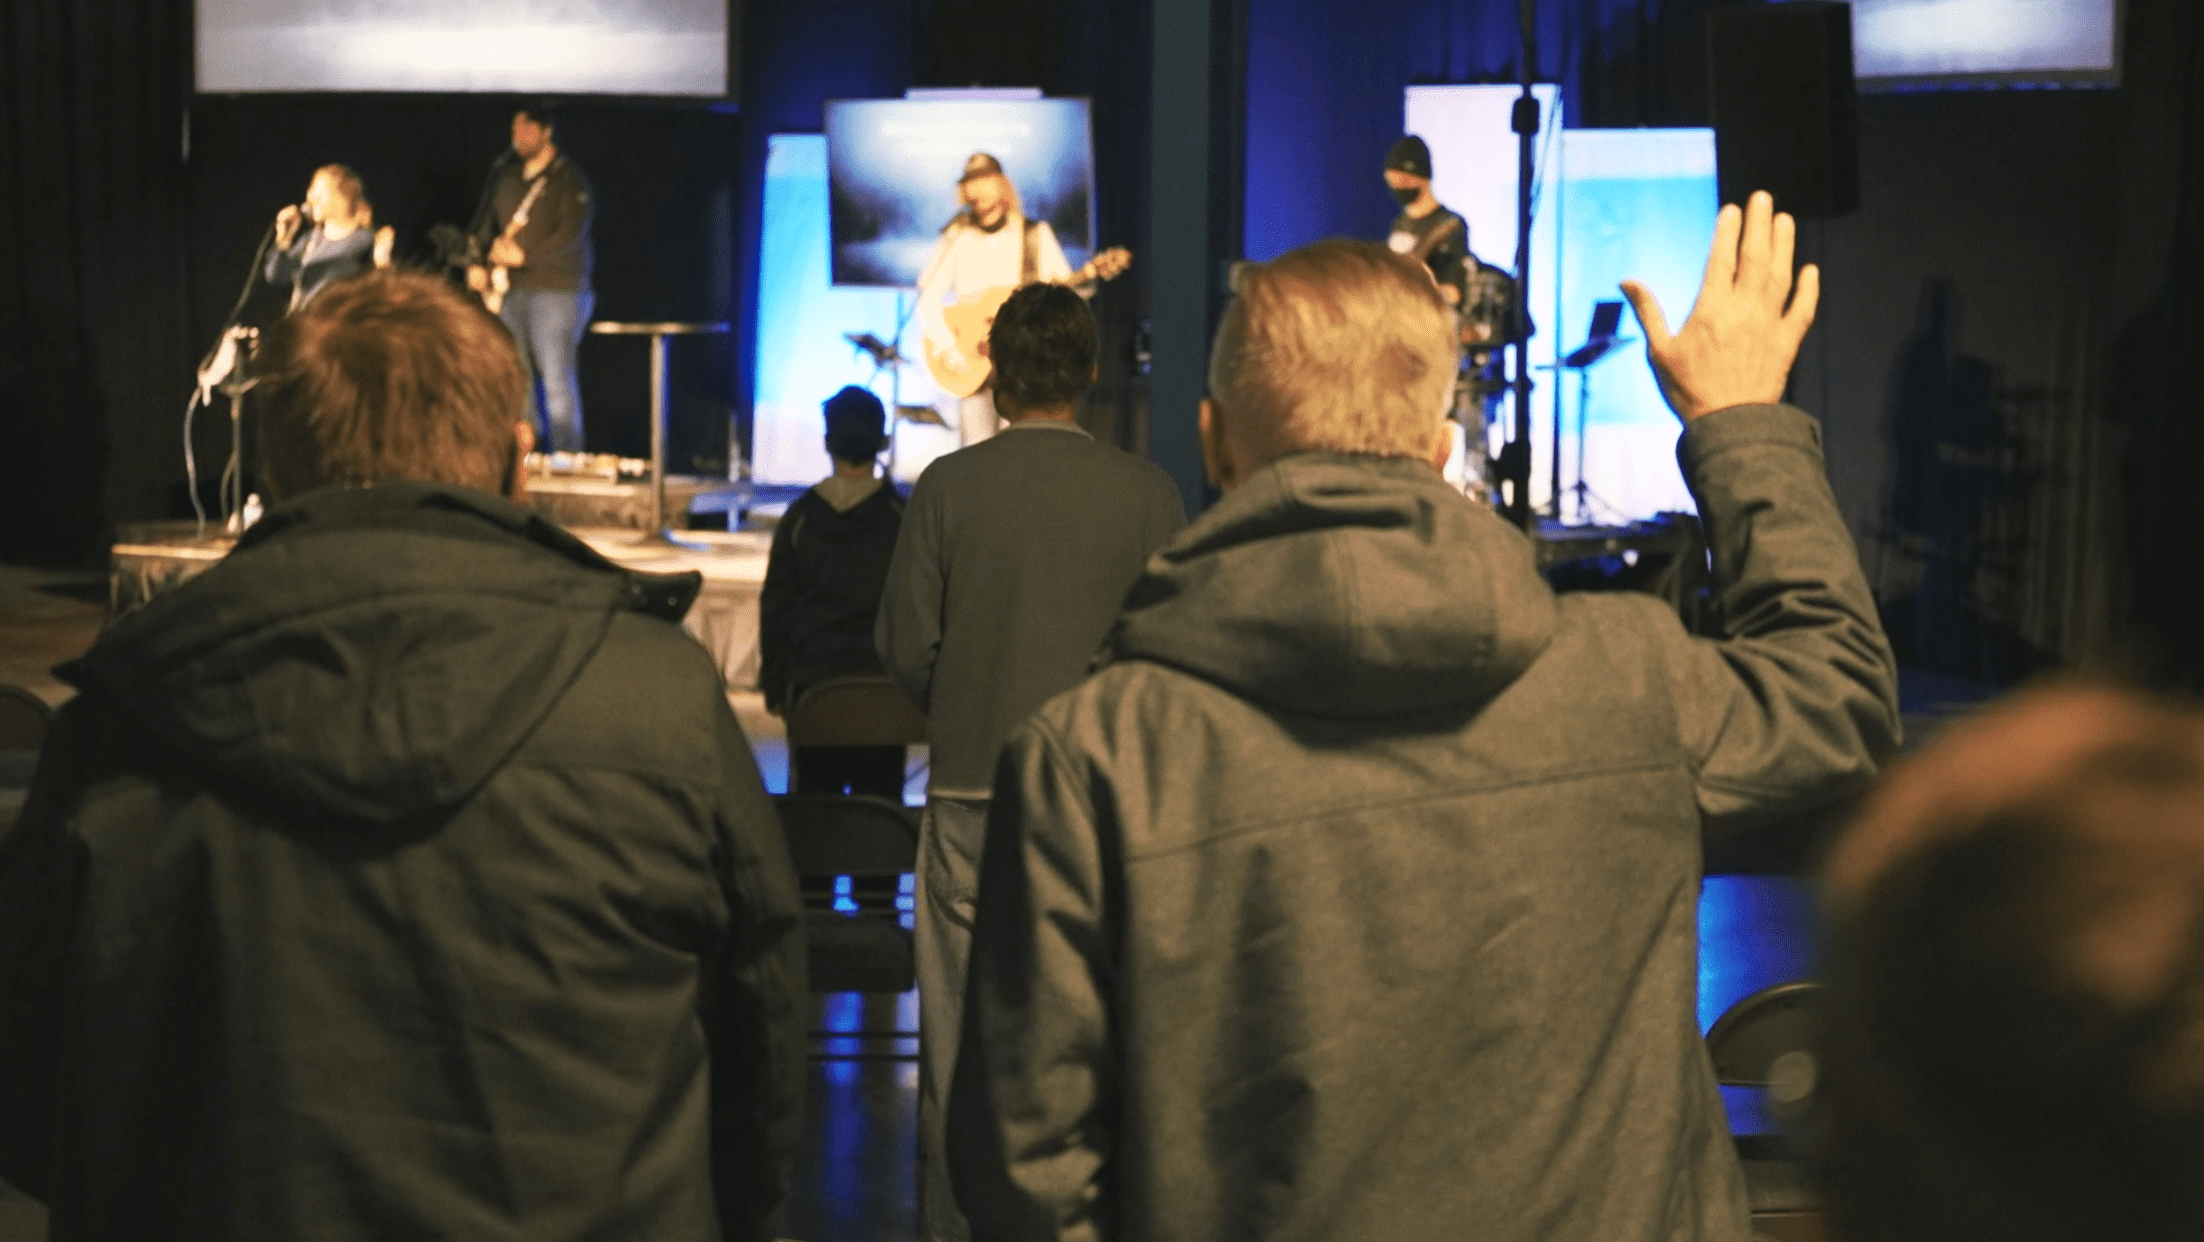 God's people worshiping